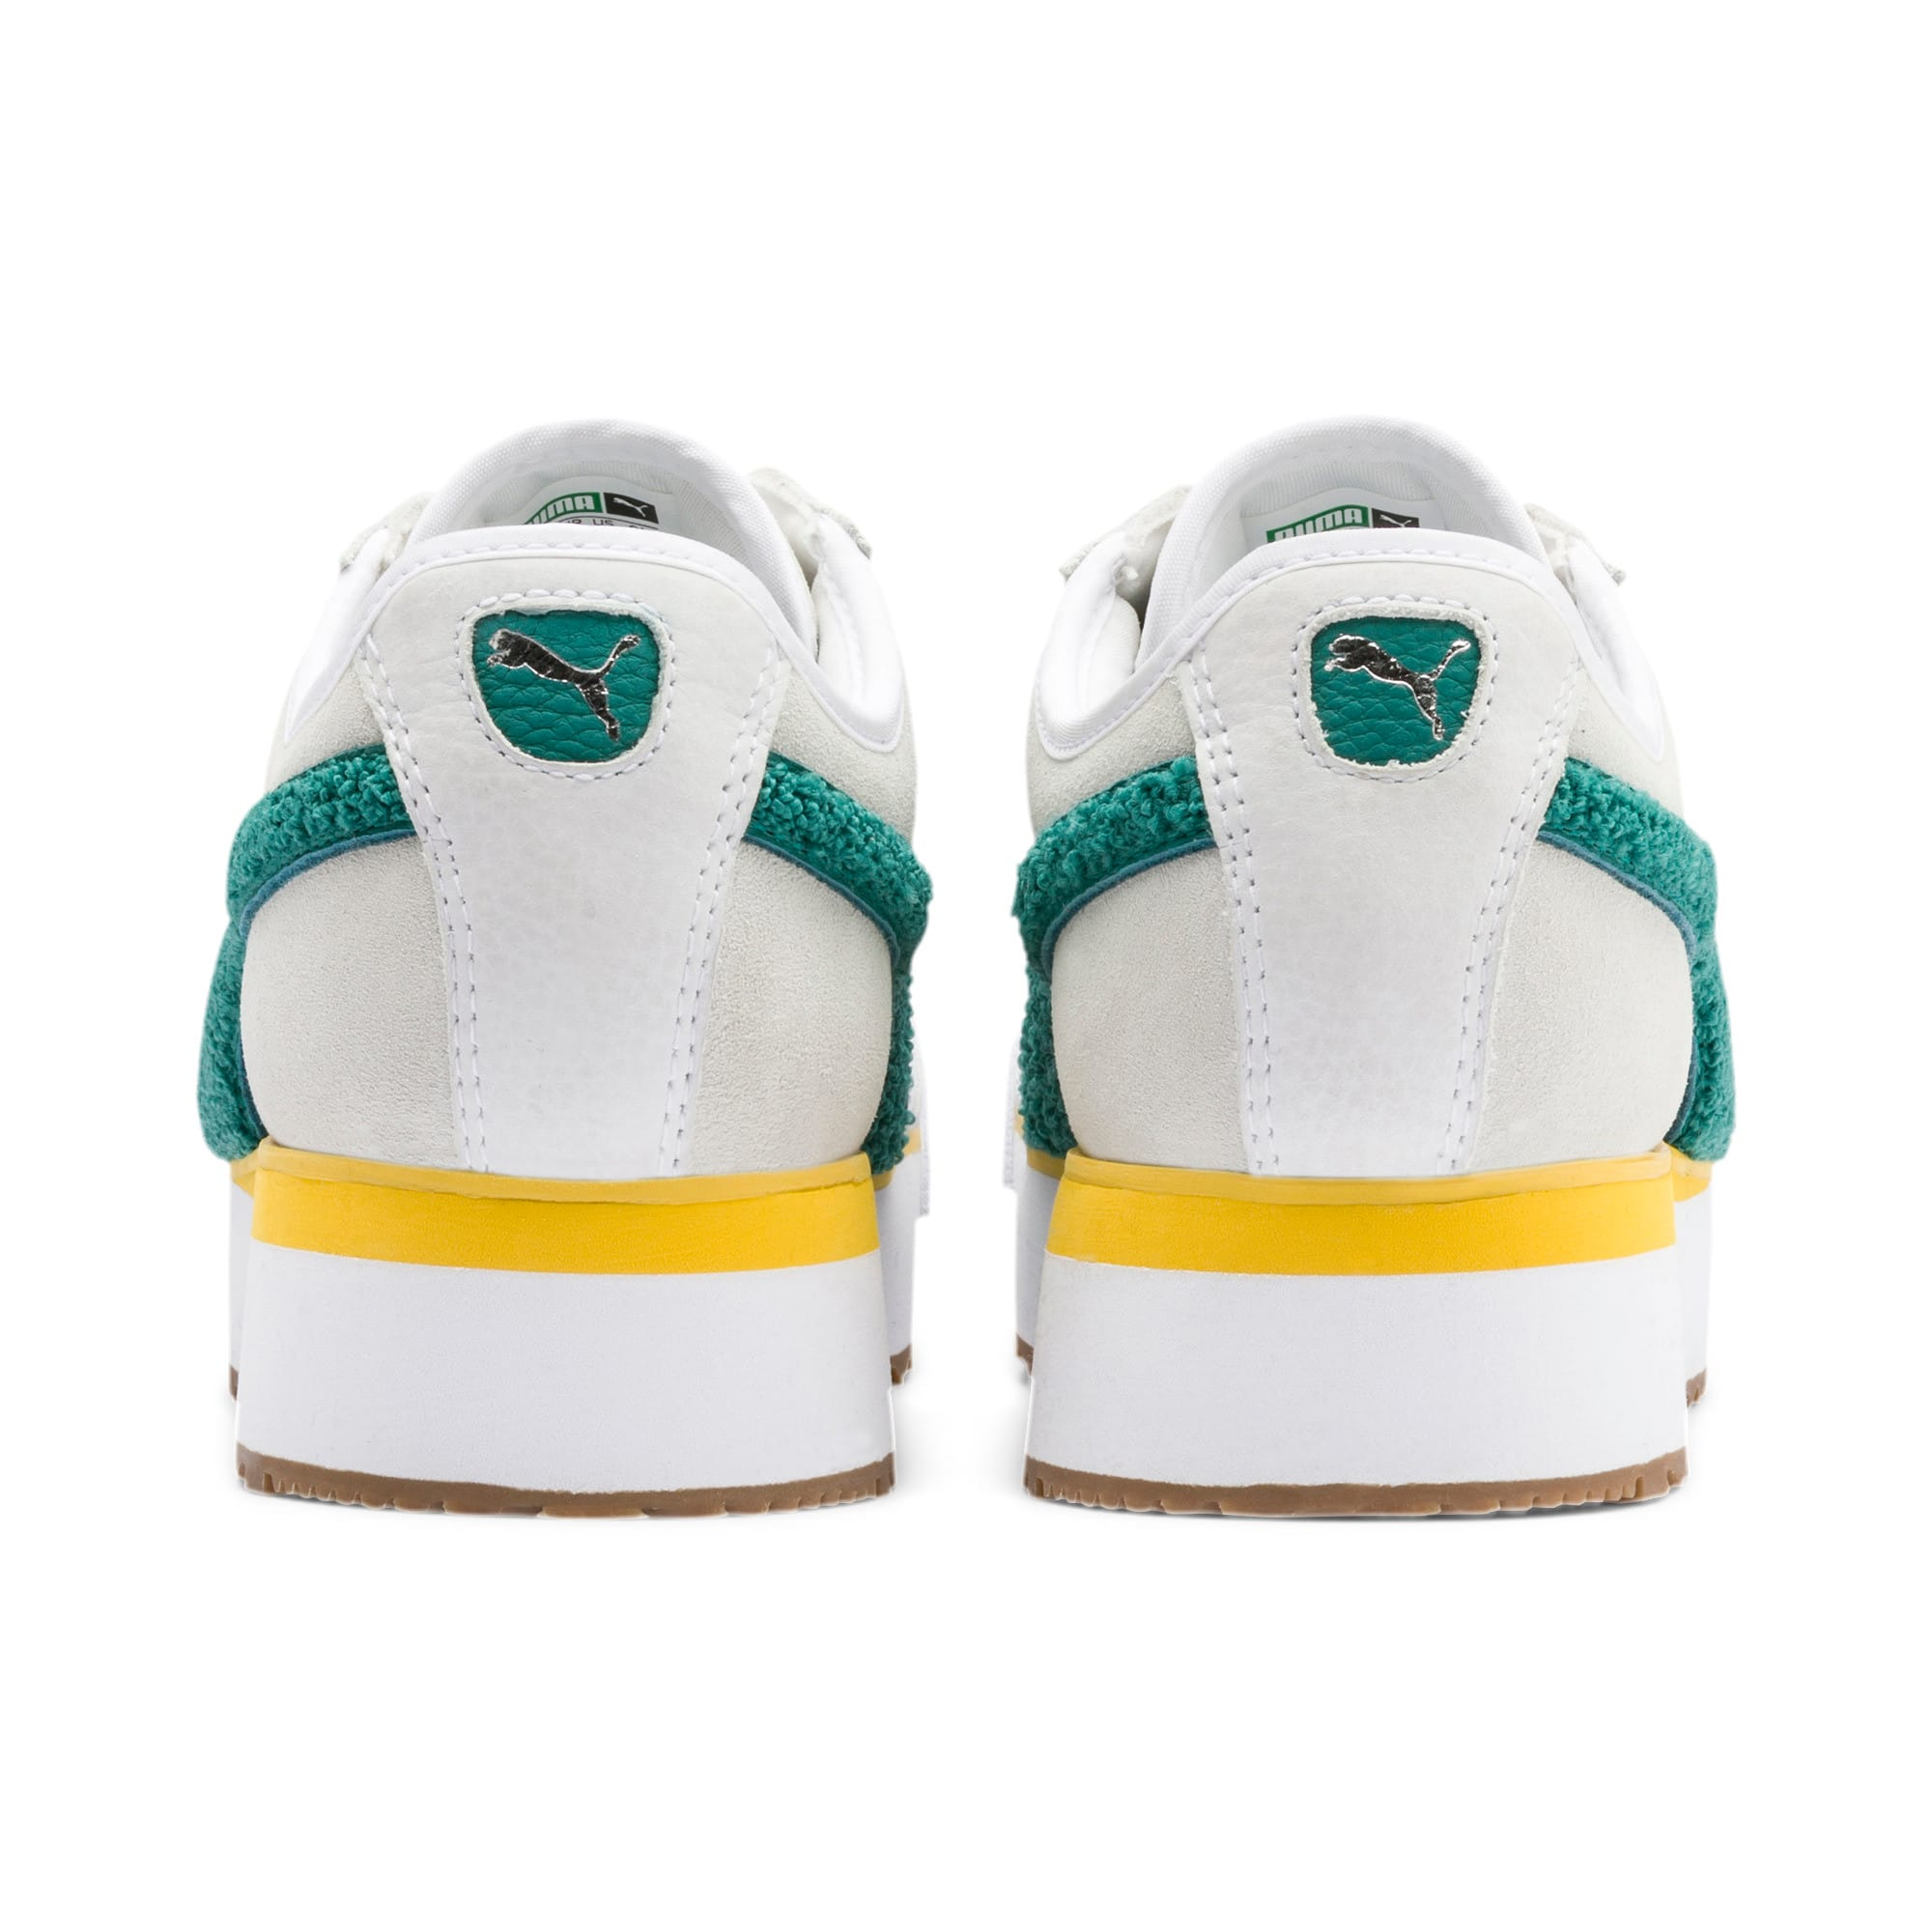 Thumbnail 4 of Roma Amor Heritage Women's Sneakers, Puma White-Teal Green, medium